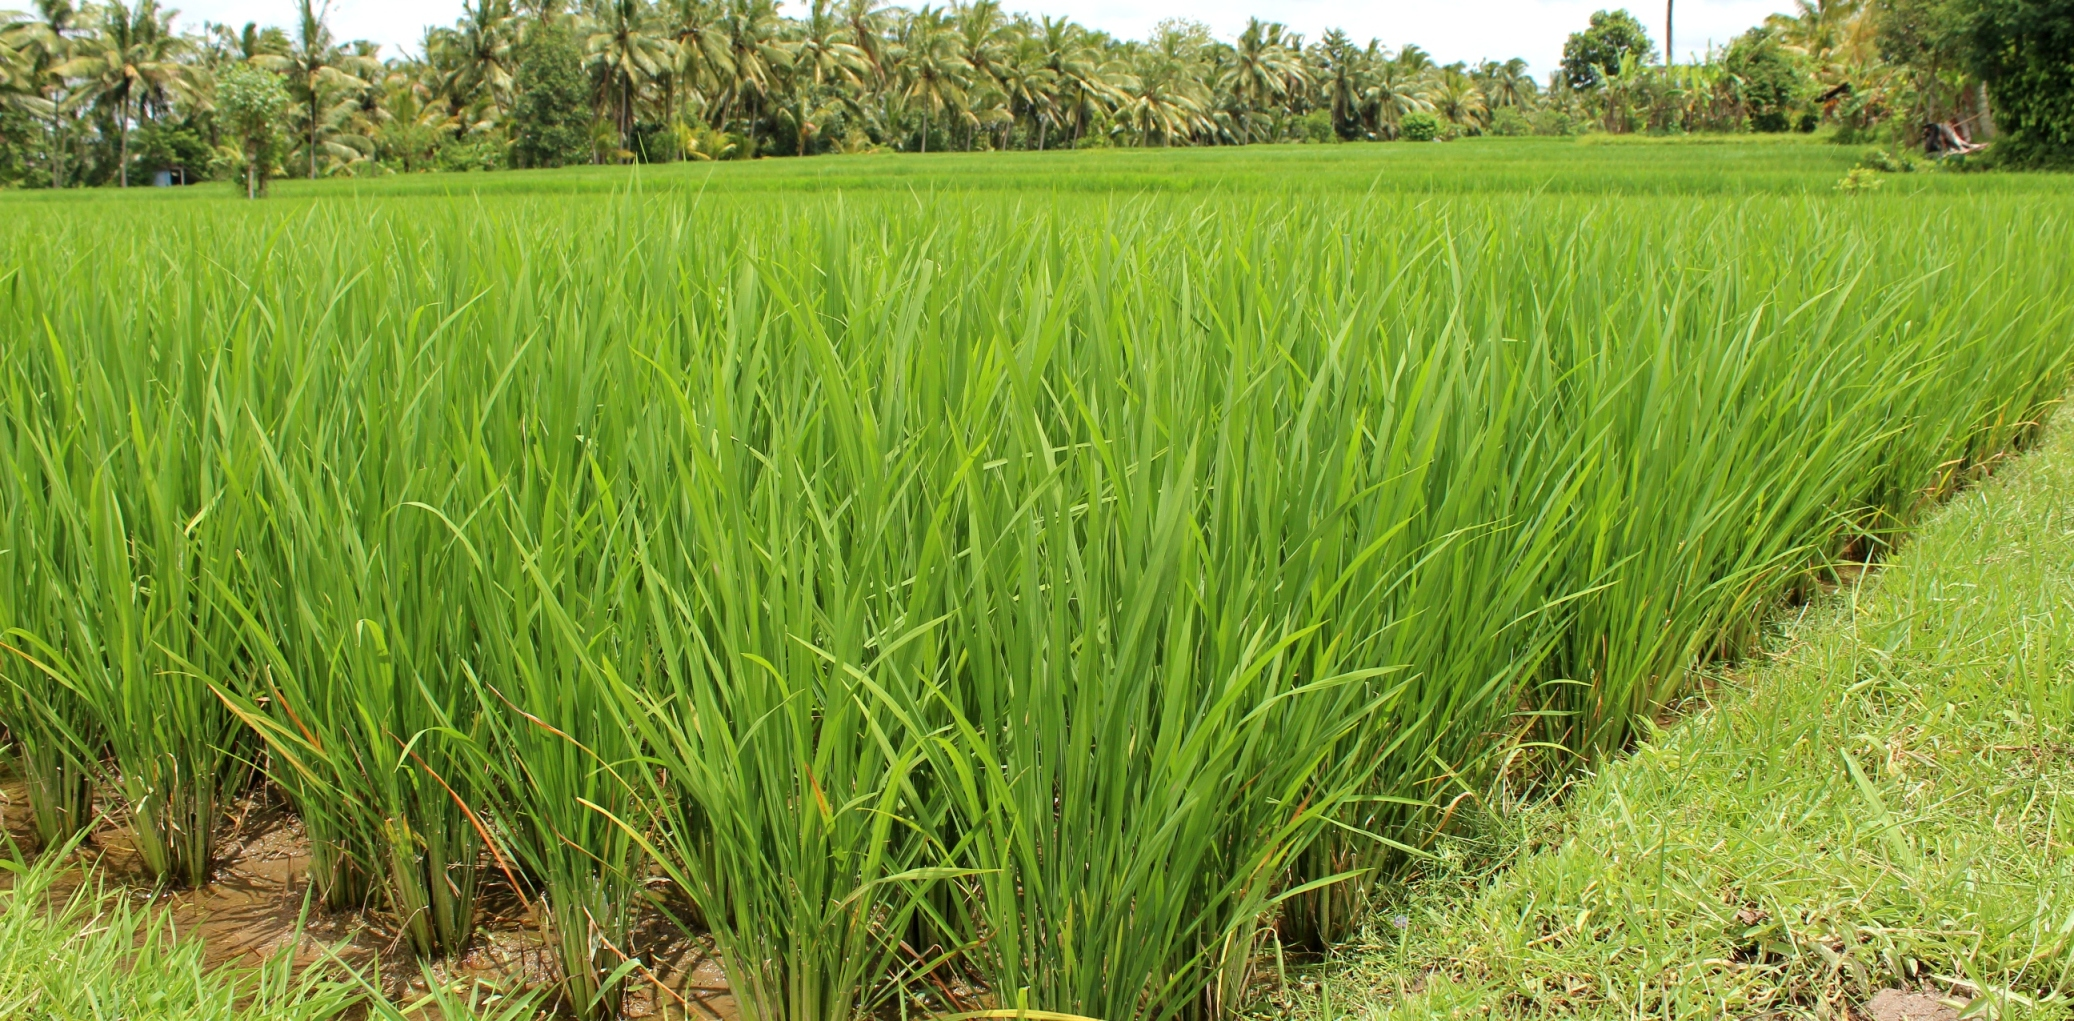 a well tended rice field